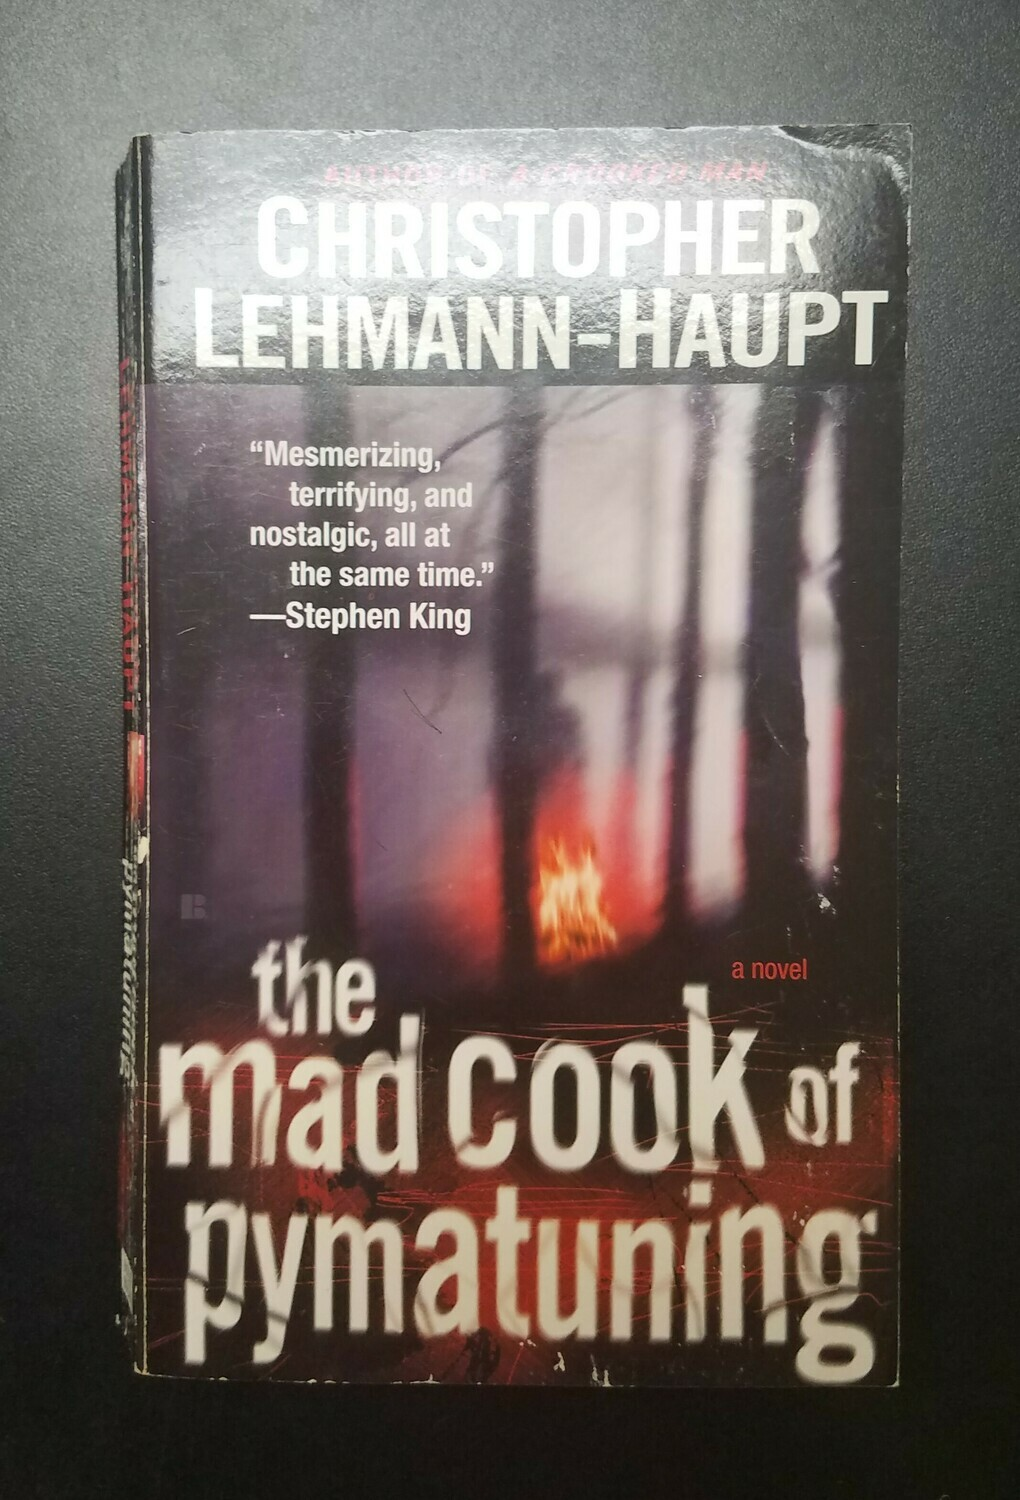 The Mad Cook of Pymatuning by Christopher Lehmann-Haupt